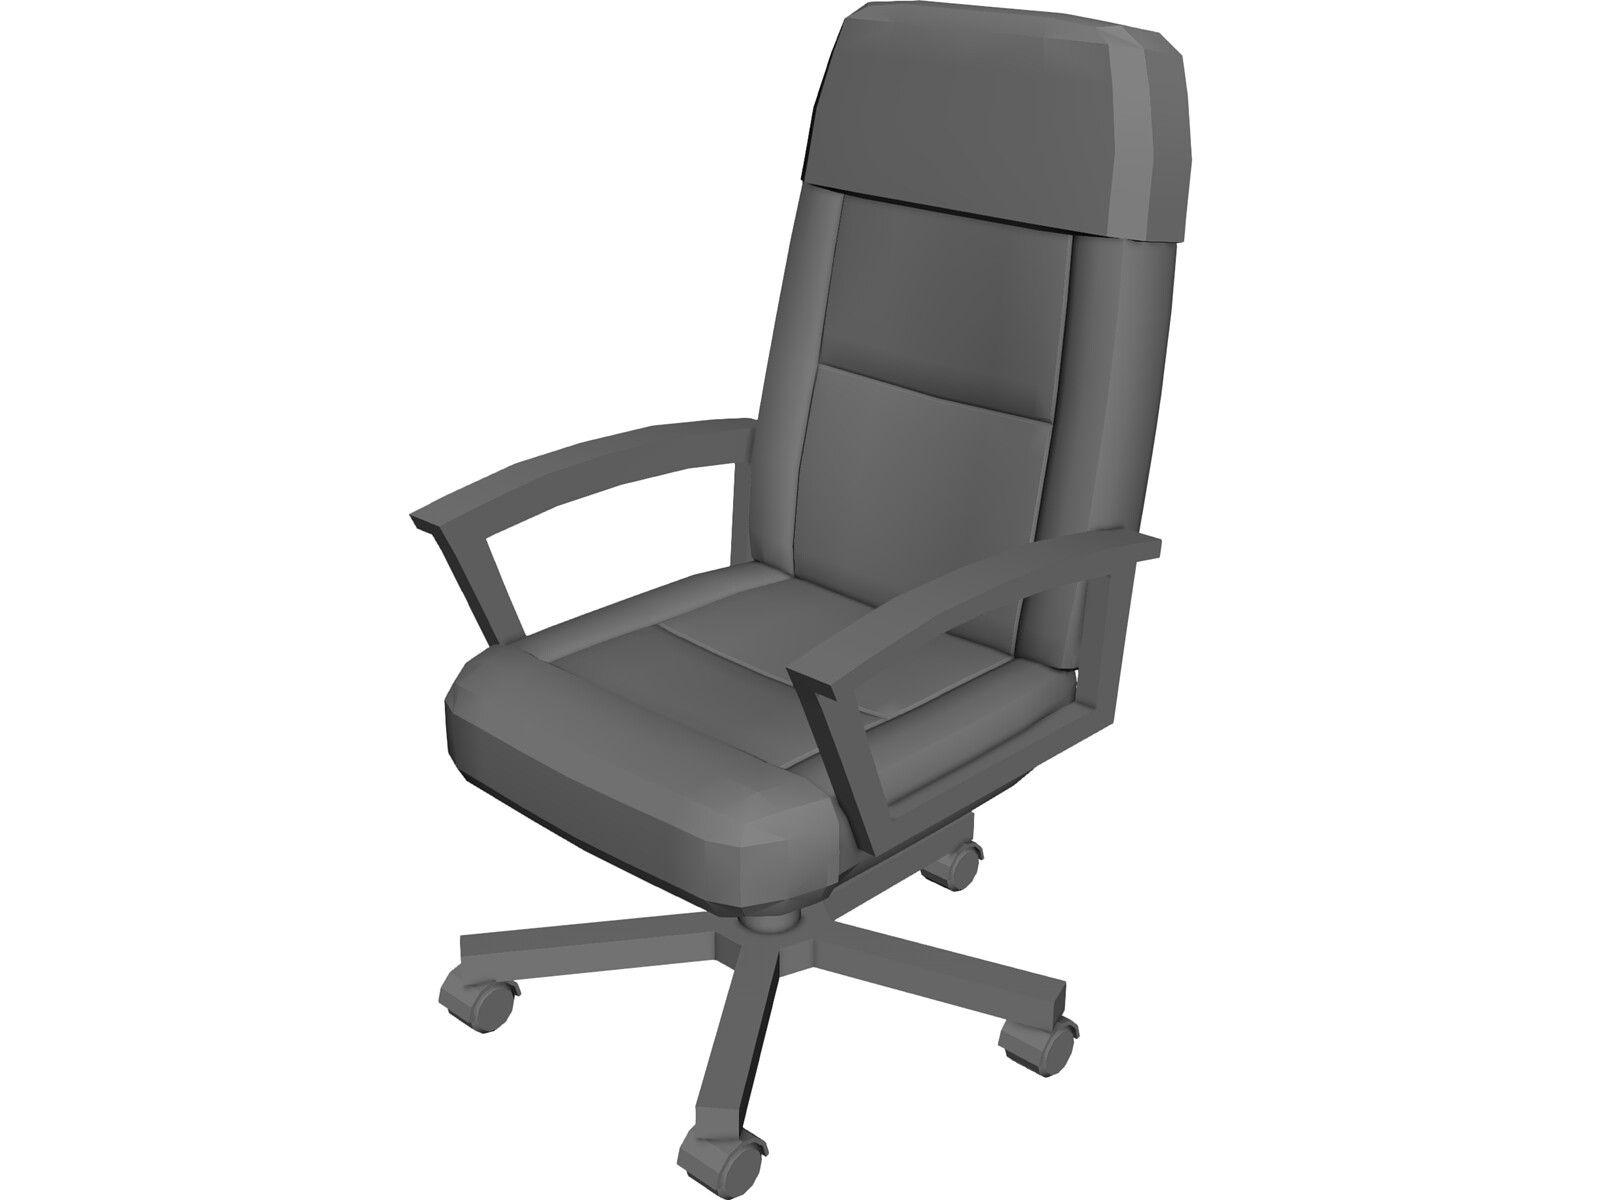 Office chair 3d model 3d cad browser for Chair 3d model maya